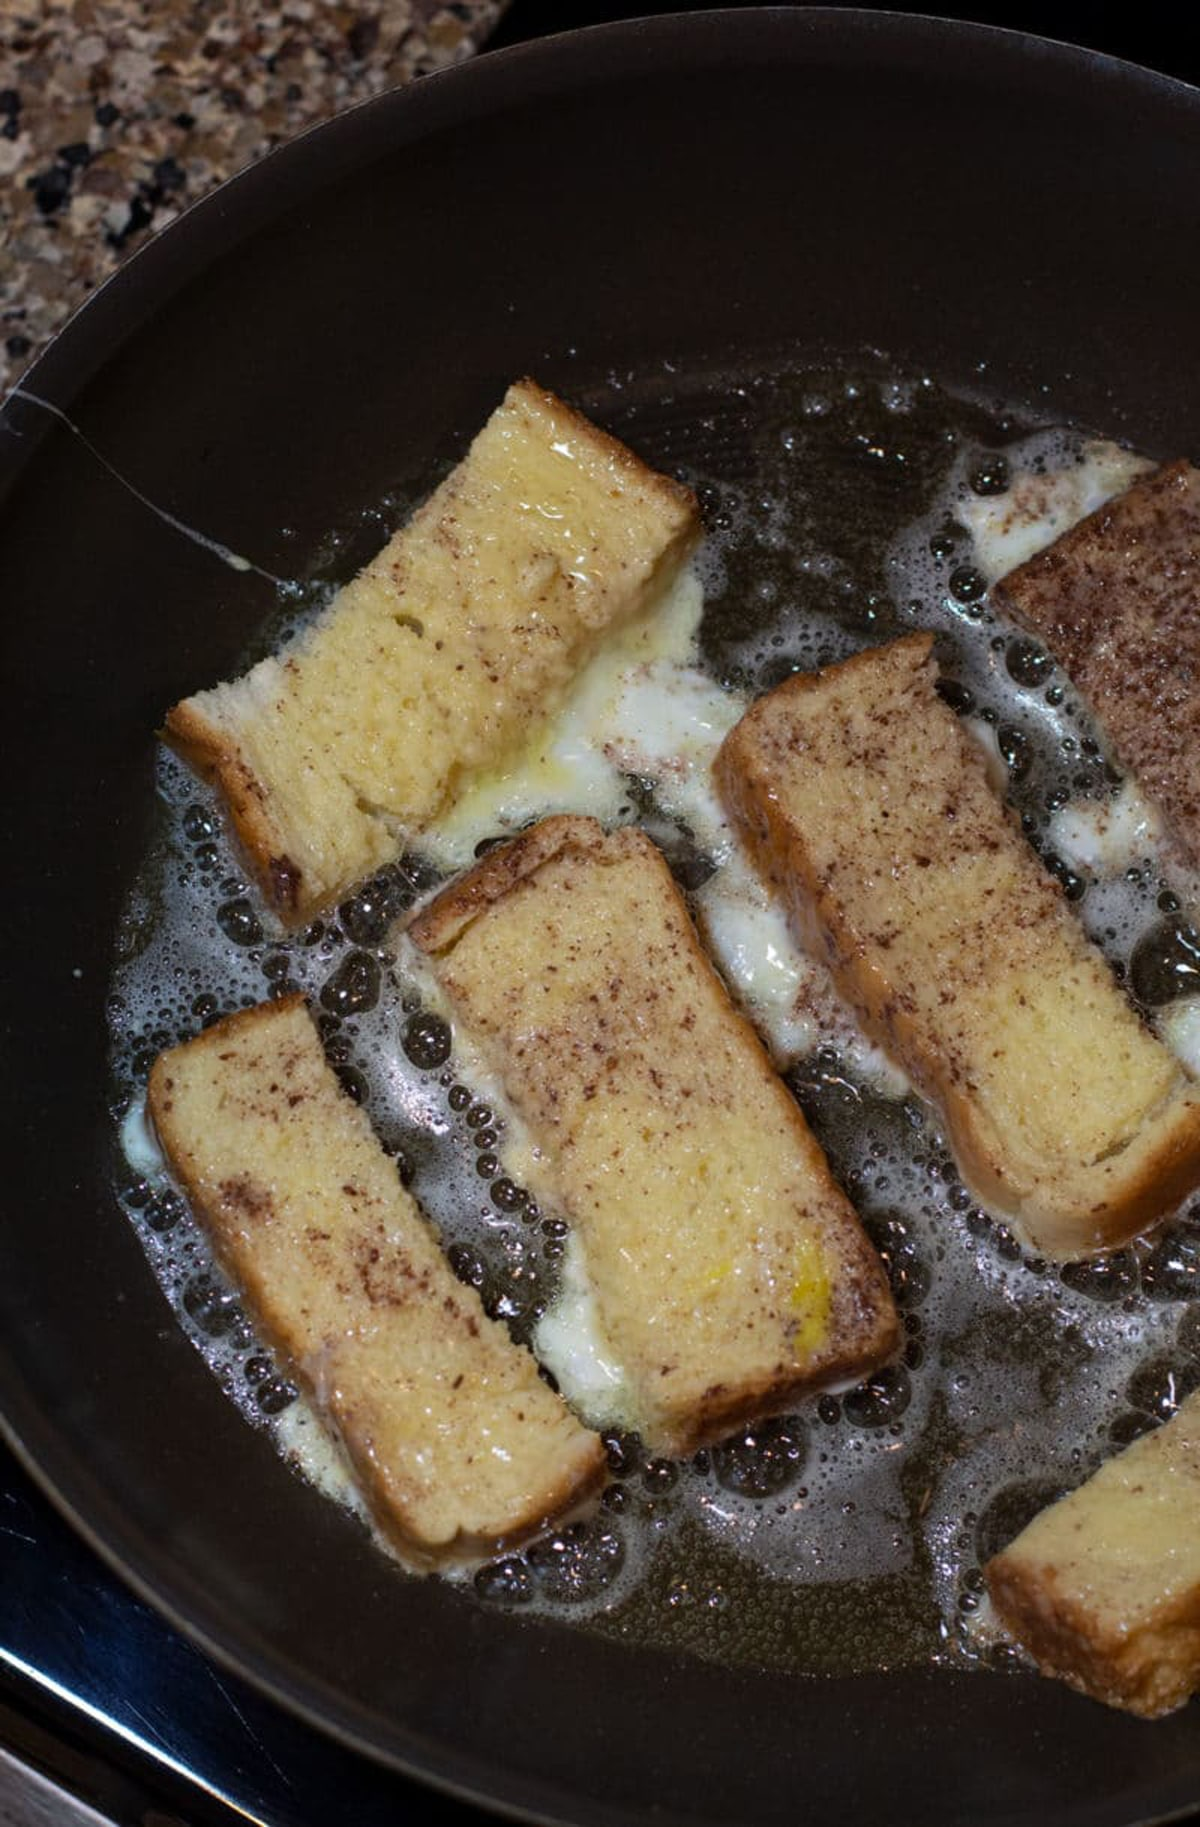 French Toast slices sauteing in butter in a pan.